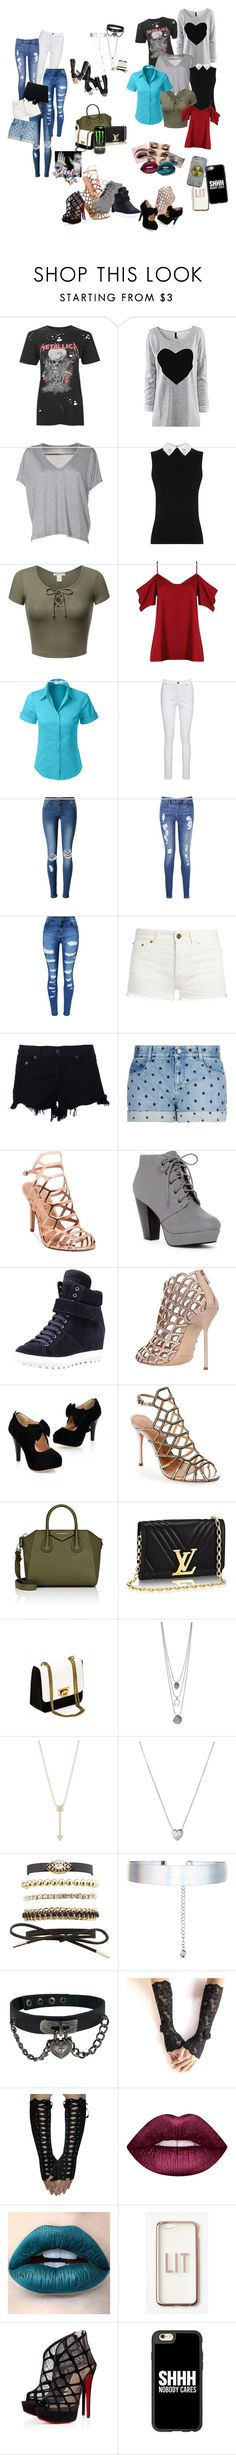 """""""shopping spree"""" by cobrakai72 ❤ liked on Polyvore featuring Topshop, Acne Studios, Boohoo, LE3NO, Joe Browns, WithChic, Tommy Hilfiger, Yves Saint Laurent, rag & bone and STELLA McCARTNEY"""